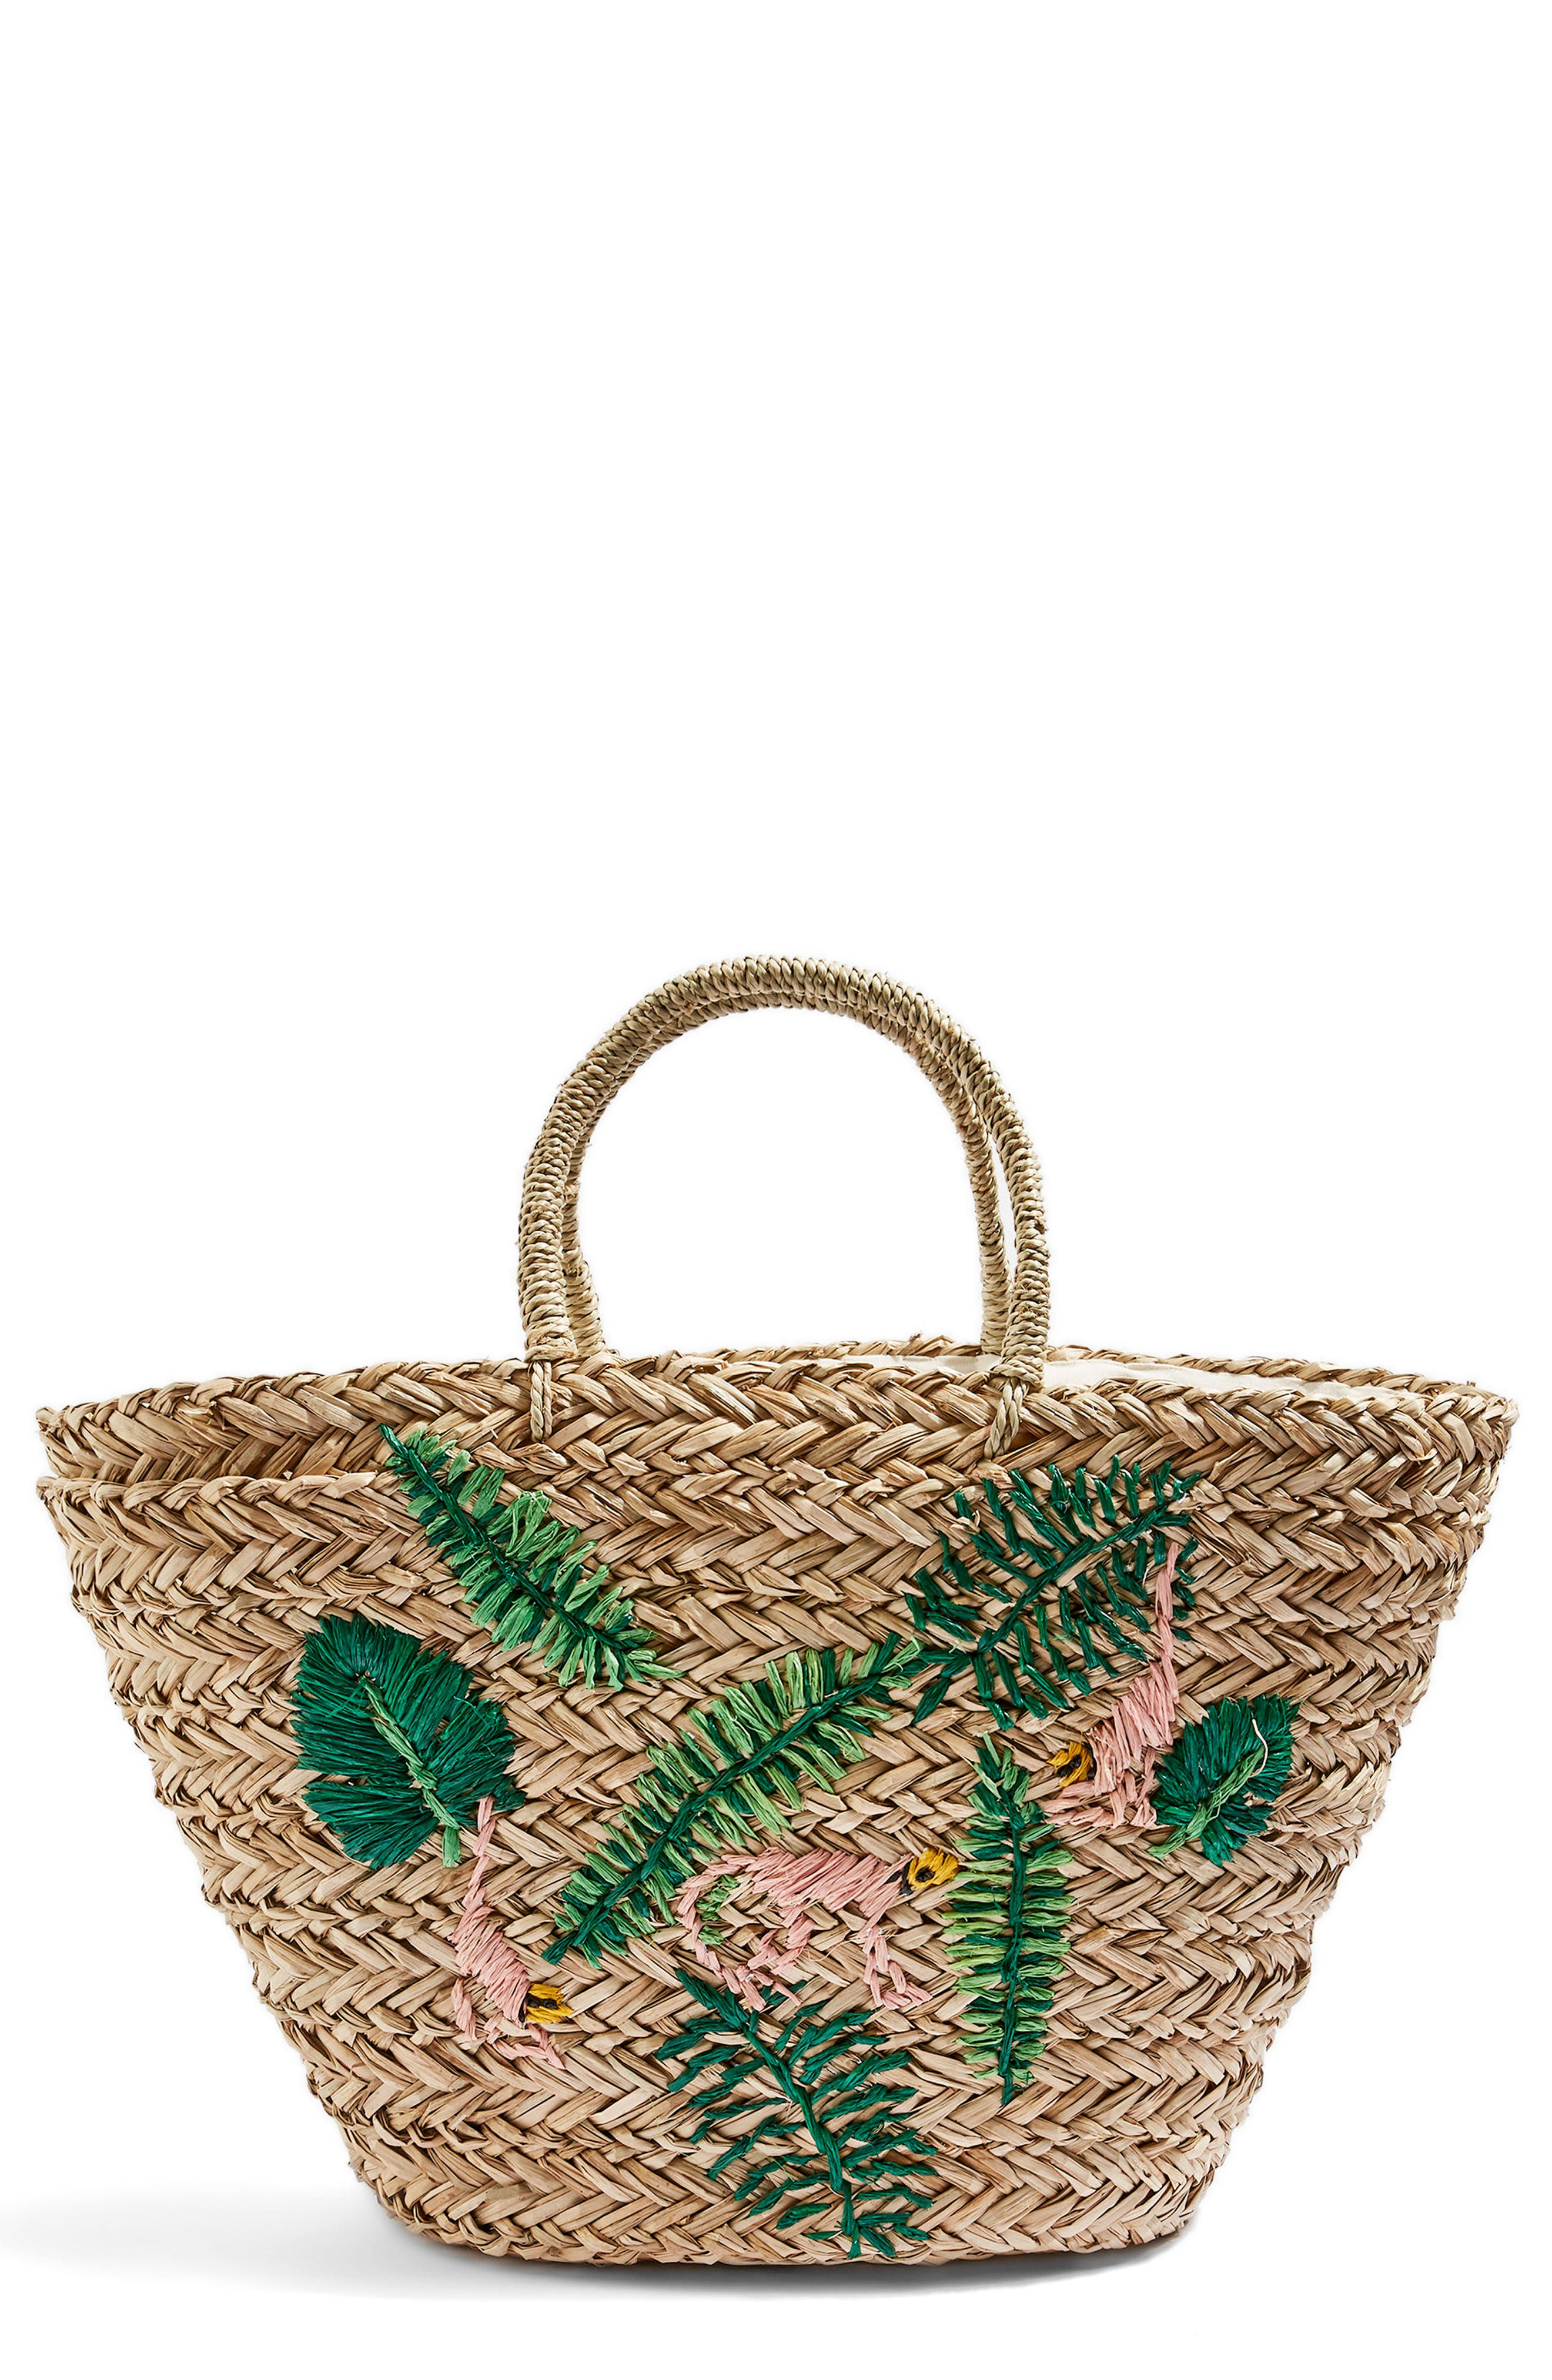 Barrio Monkey Embroidered Straw Tote Bag,                             Main thumbnail 1, color,                             250